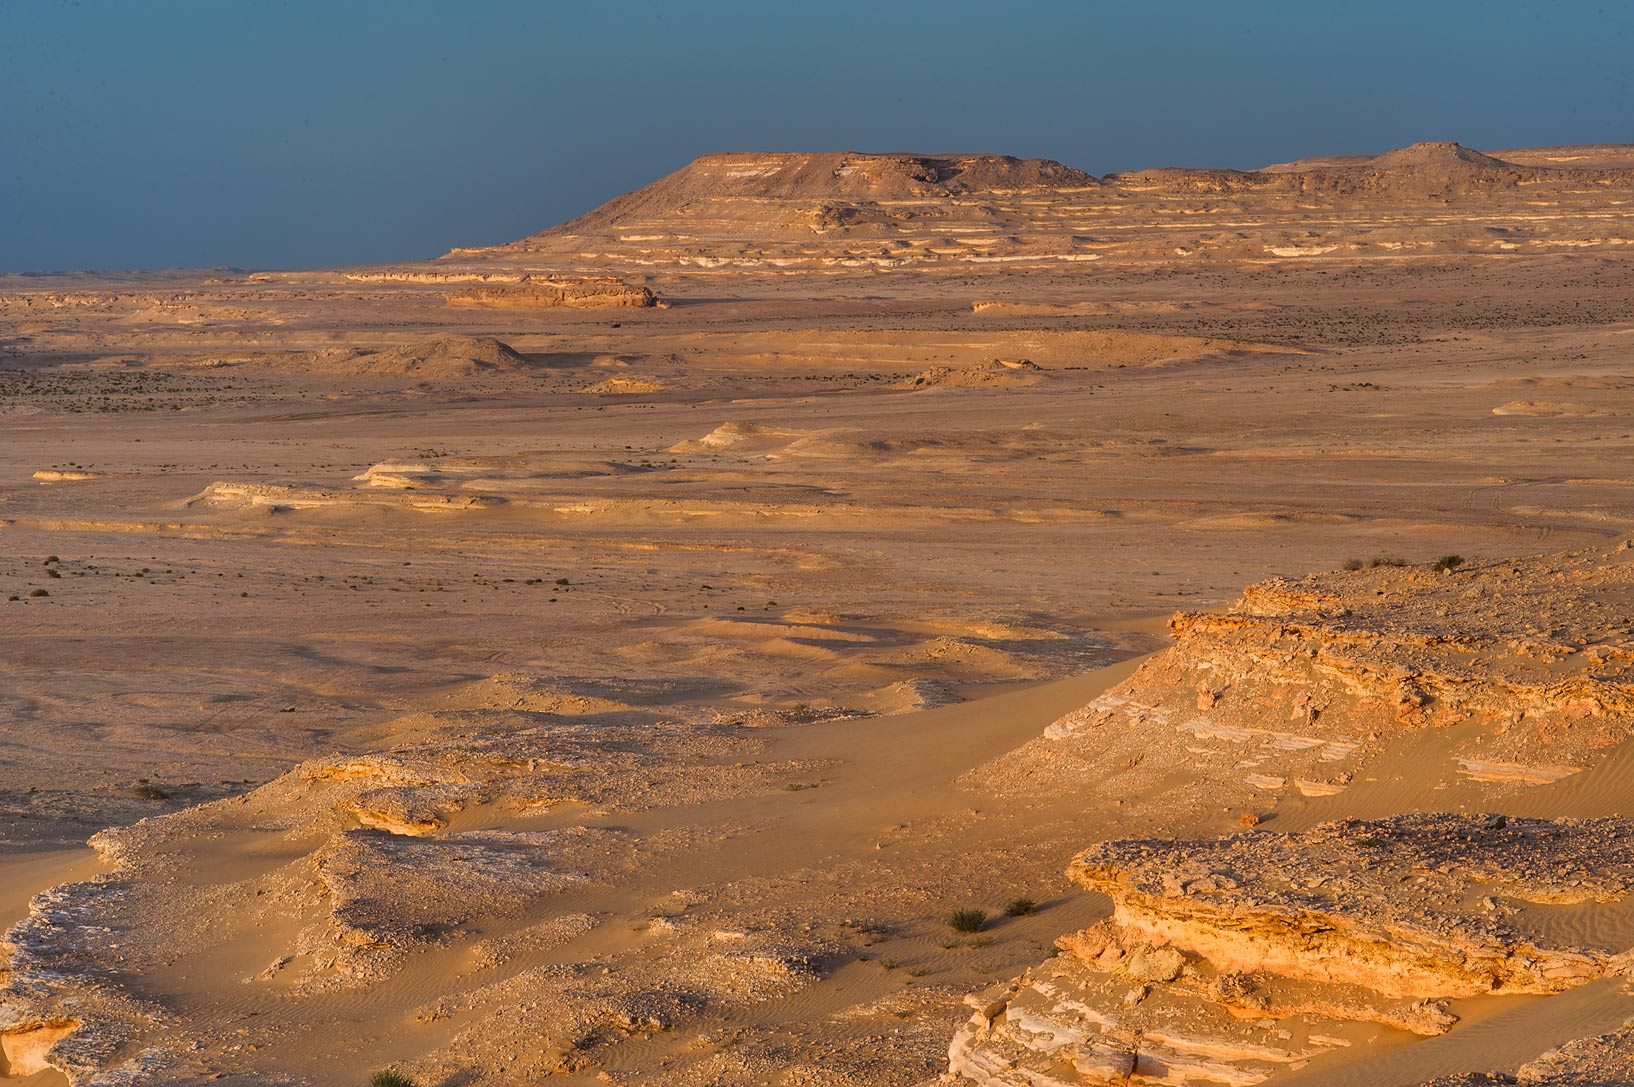 Slopes of Jebel Al-Nakhsh (Khashm an Nakhsh) at sunrise. South-western Qatar